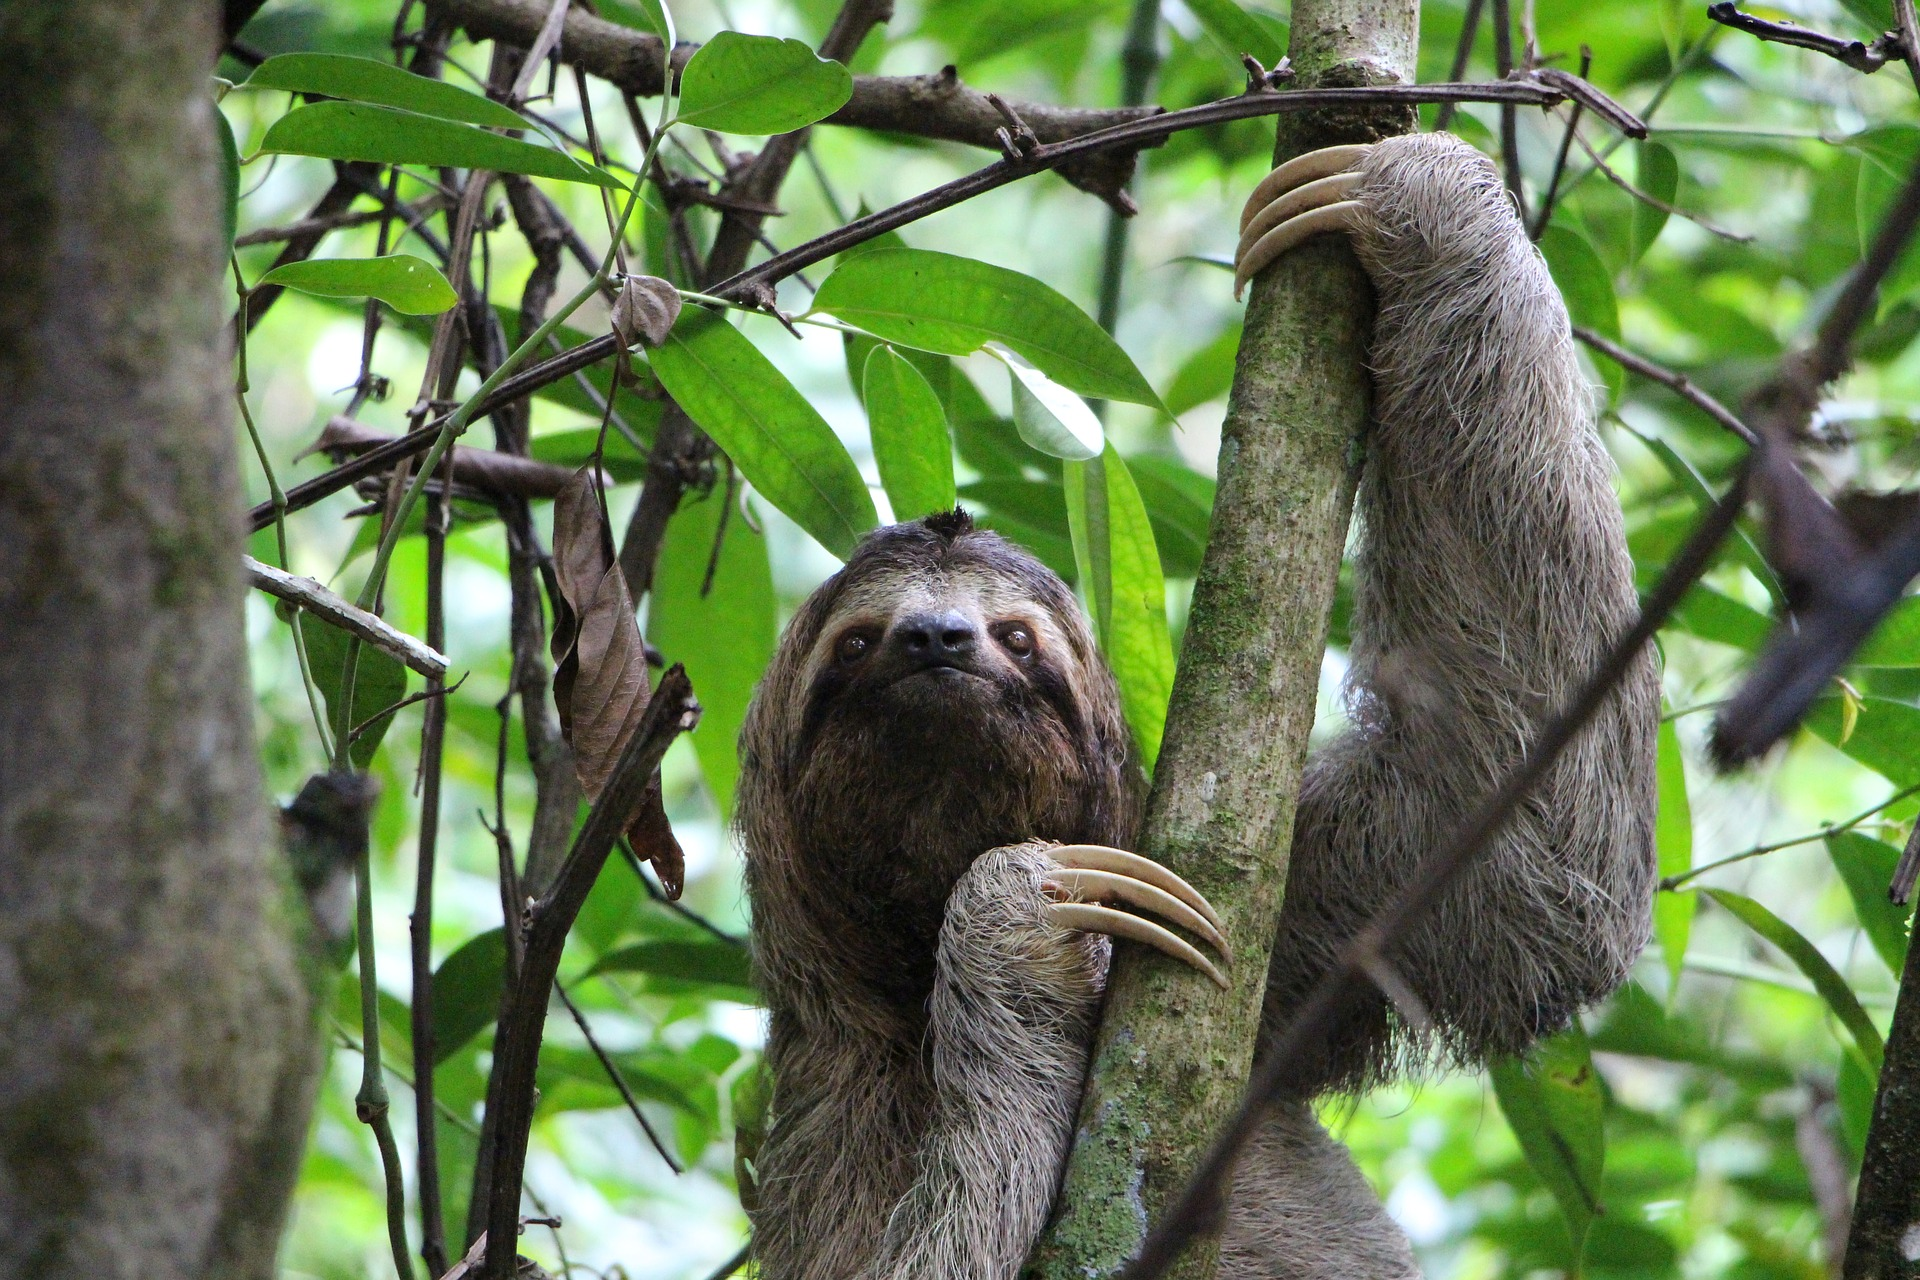 """Yeah, please don't ruin my environment, k thanks."" - Sloth"